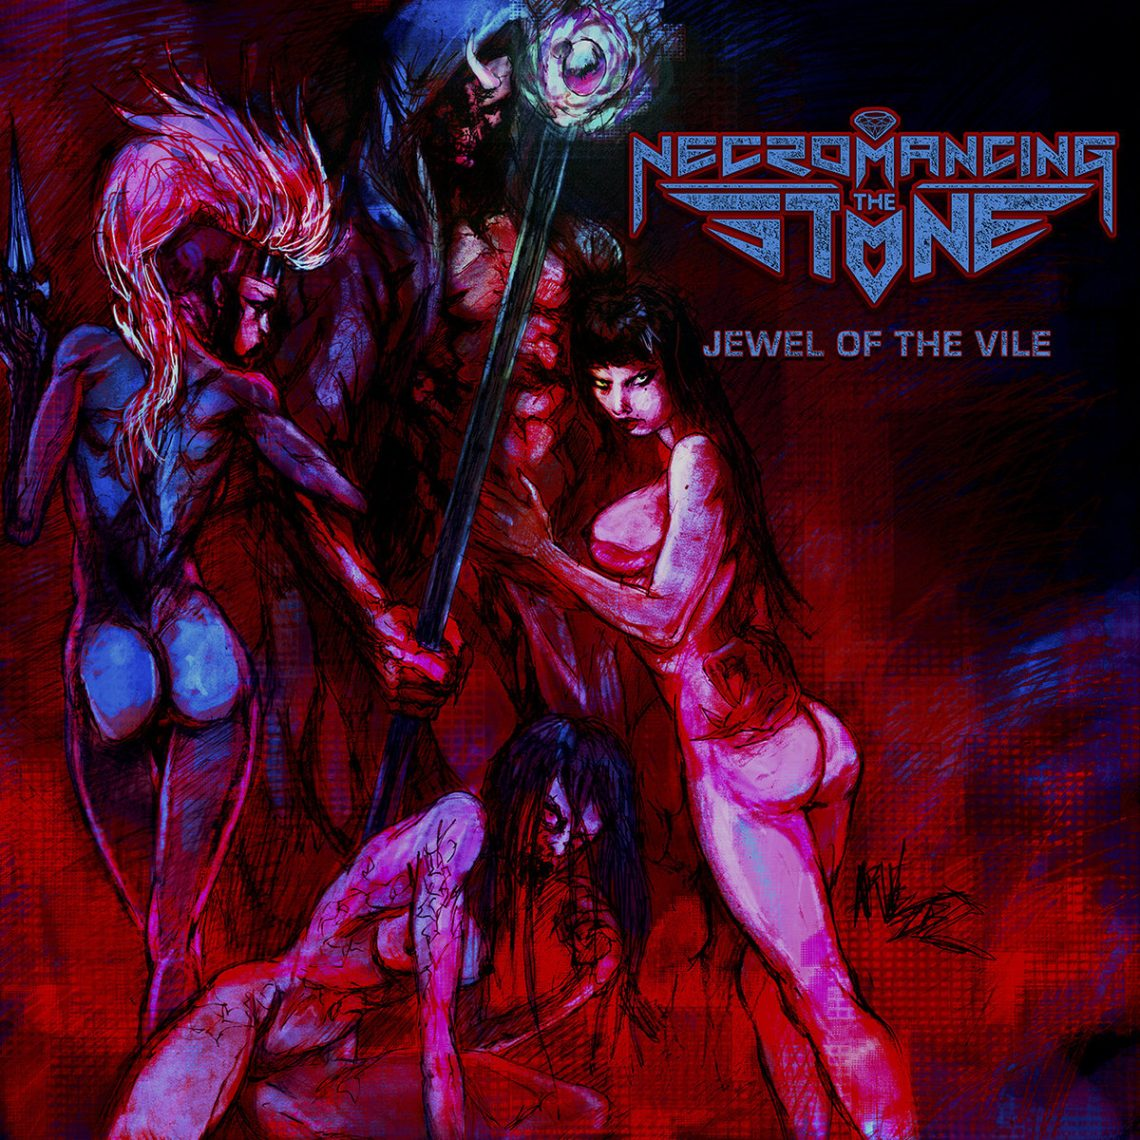 Necromancing the Stone – Jewel Of The Vile